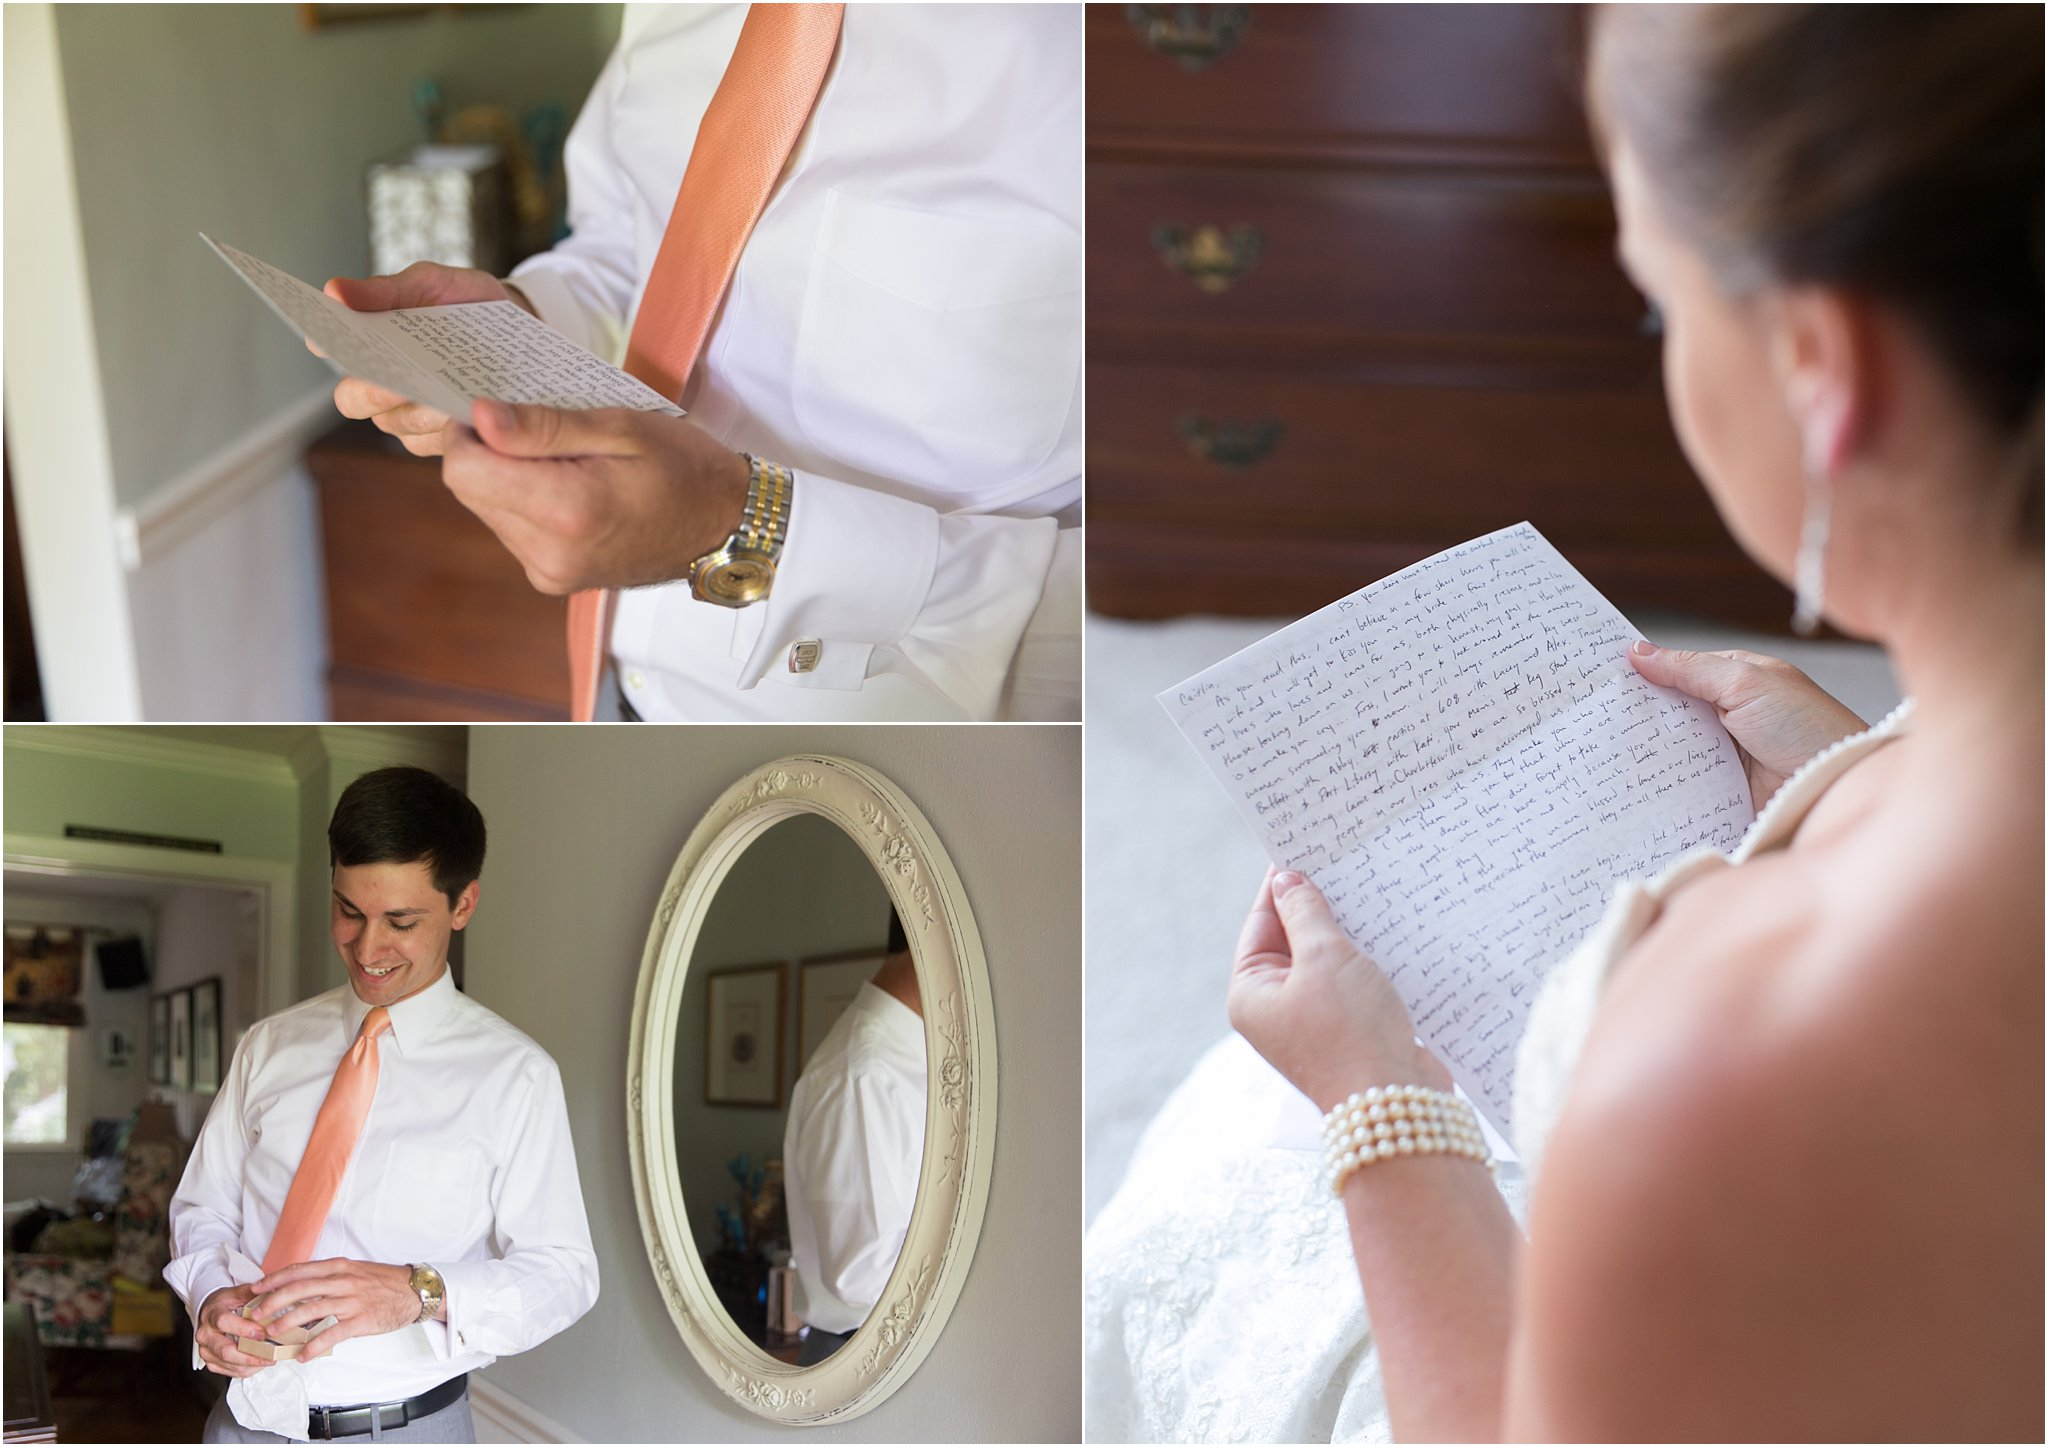 jessica_ryan_photography_wedding_photography_virginiabeach_virginia_candid_authentic_bride_tips_wedding_planning_tips_bridal_tips_1985